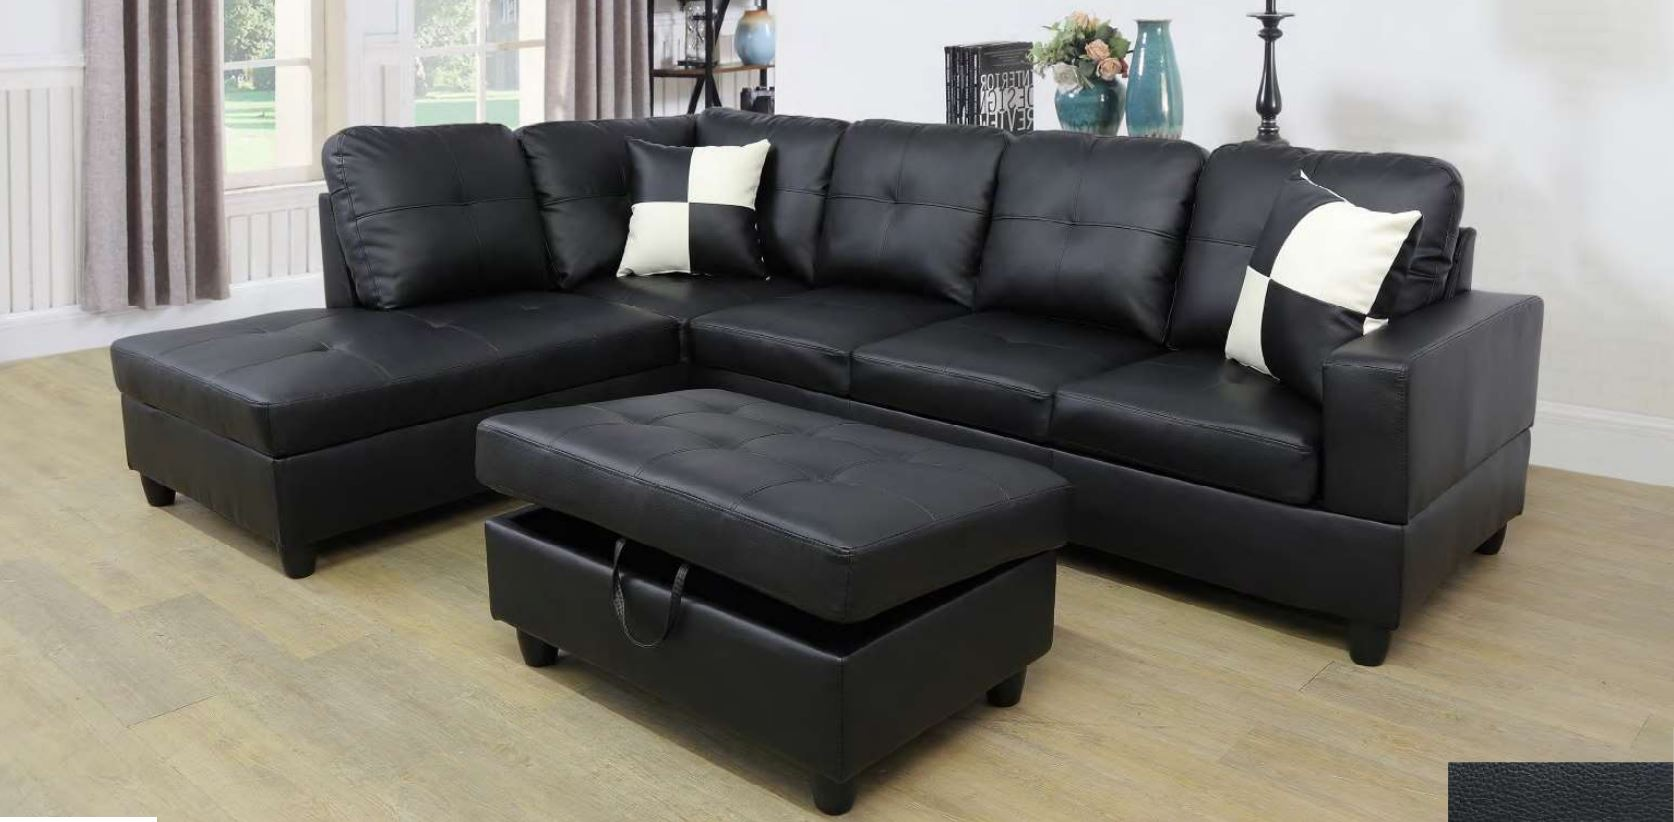 ult classic black faux leather sectional sofa left facing chaise 74 5 d x 103 5 w x 35 h